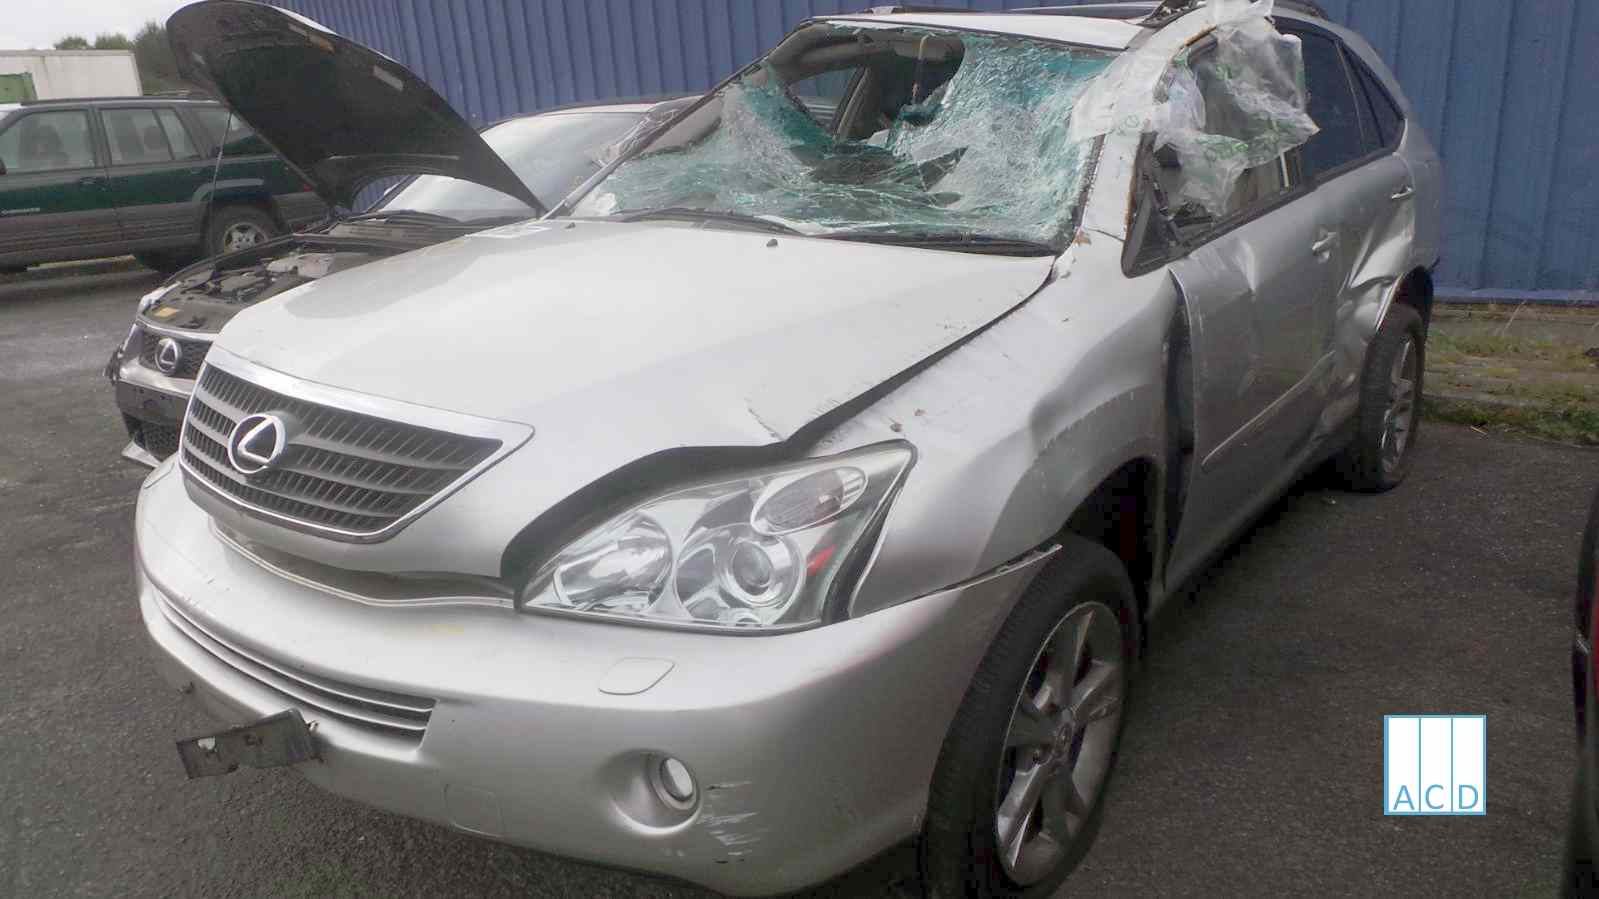 Lexus RX400 H SE 3.3L Hybrid Variable Speed 2006